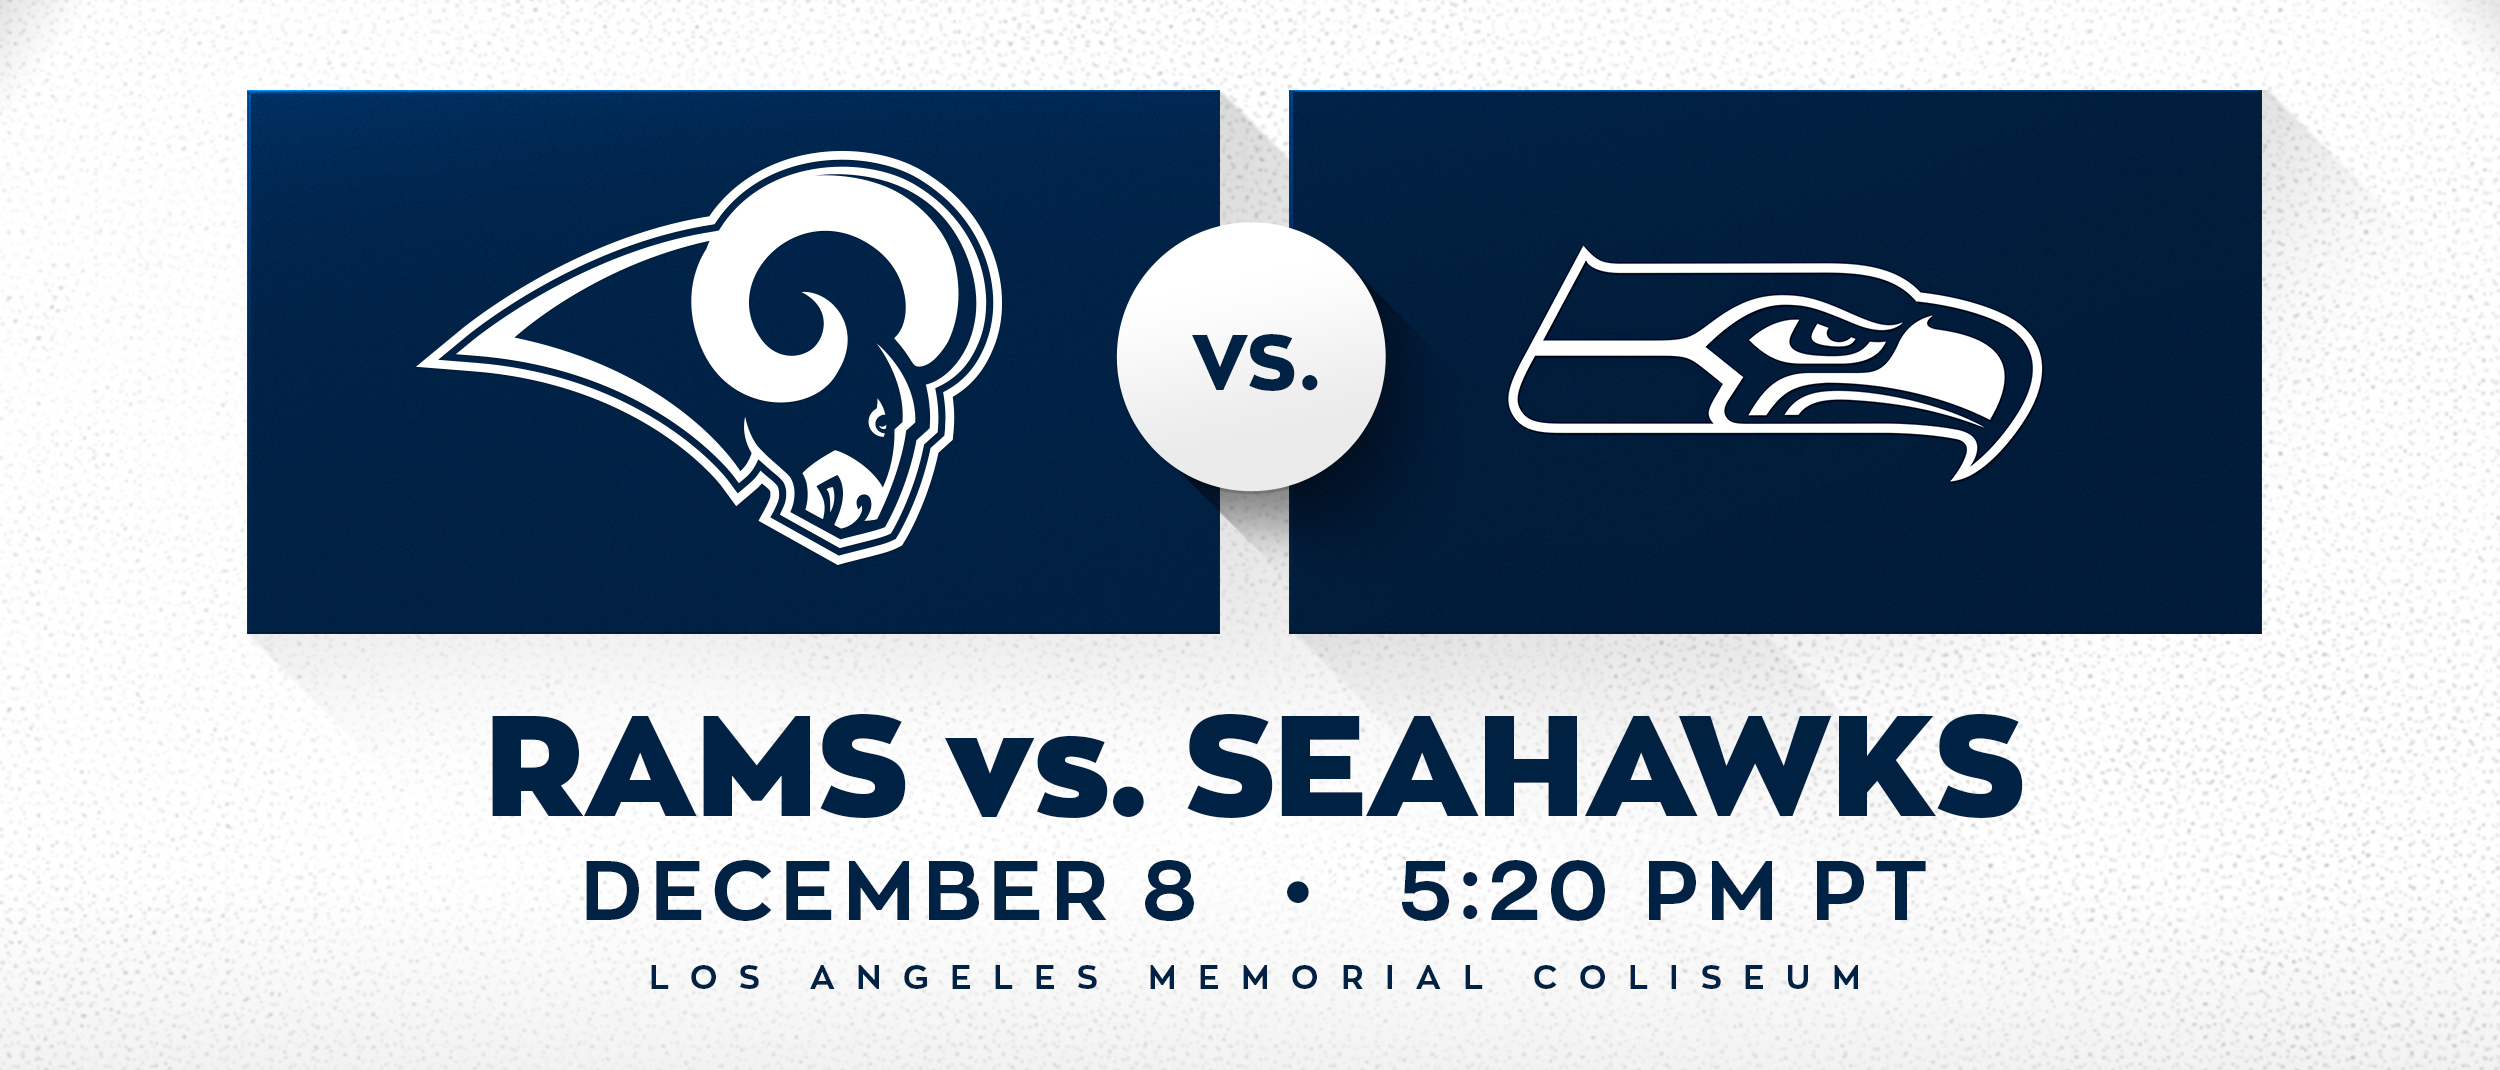 Rams Vs Seahawks Los Angeles Coliseum